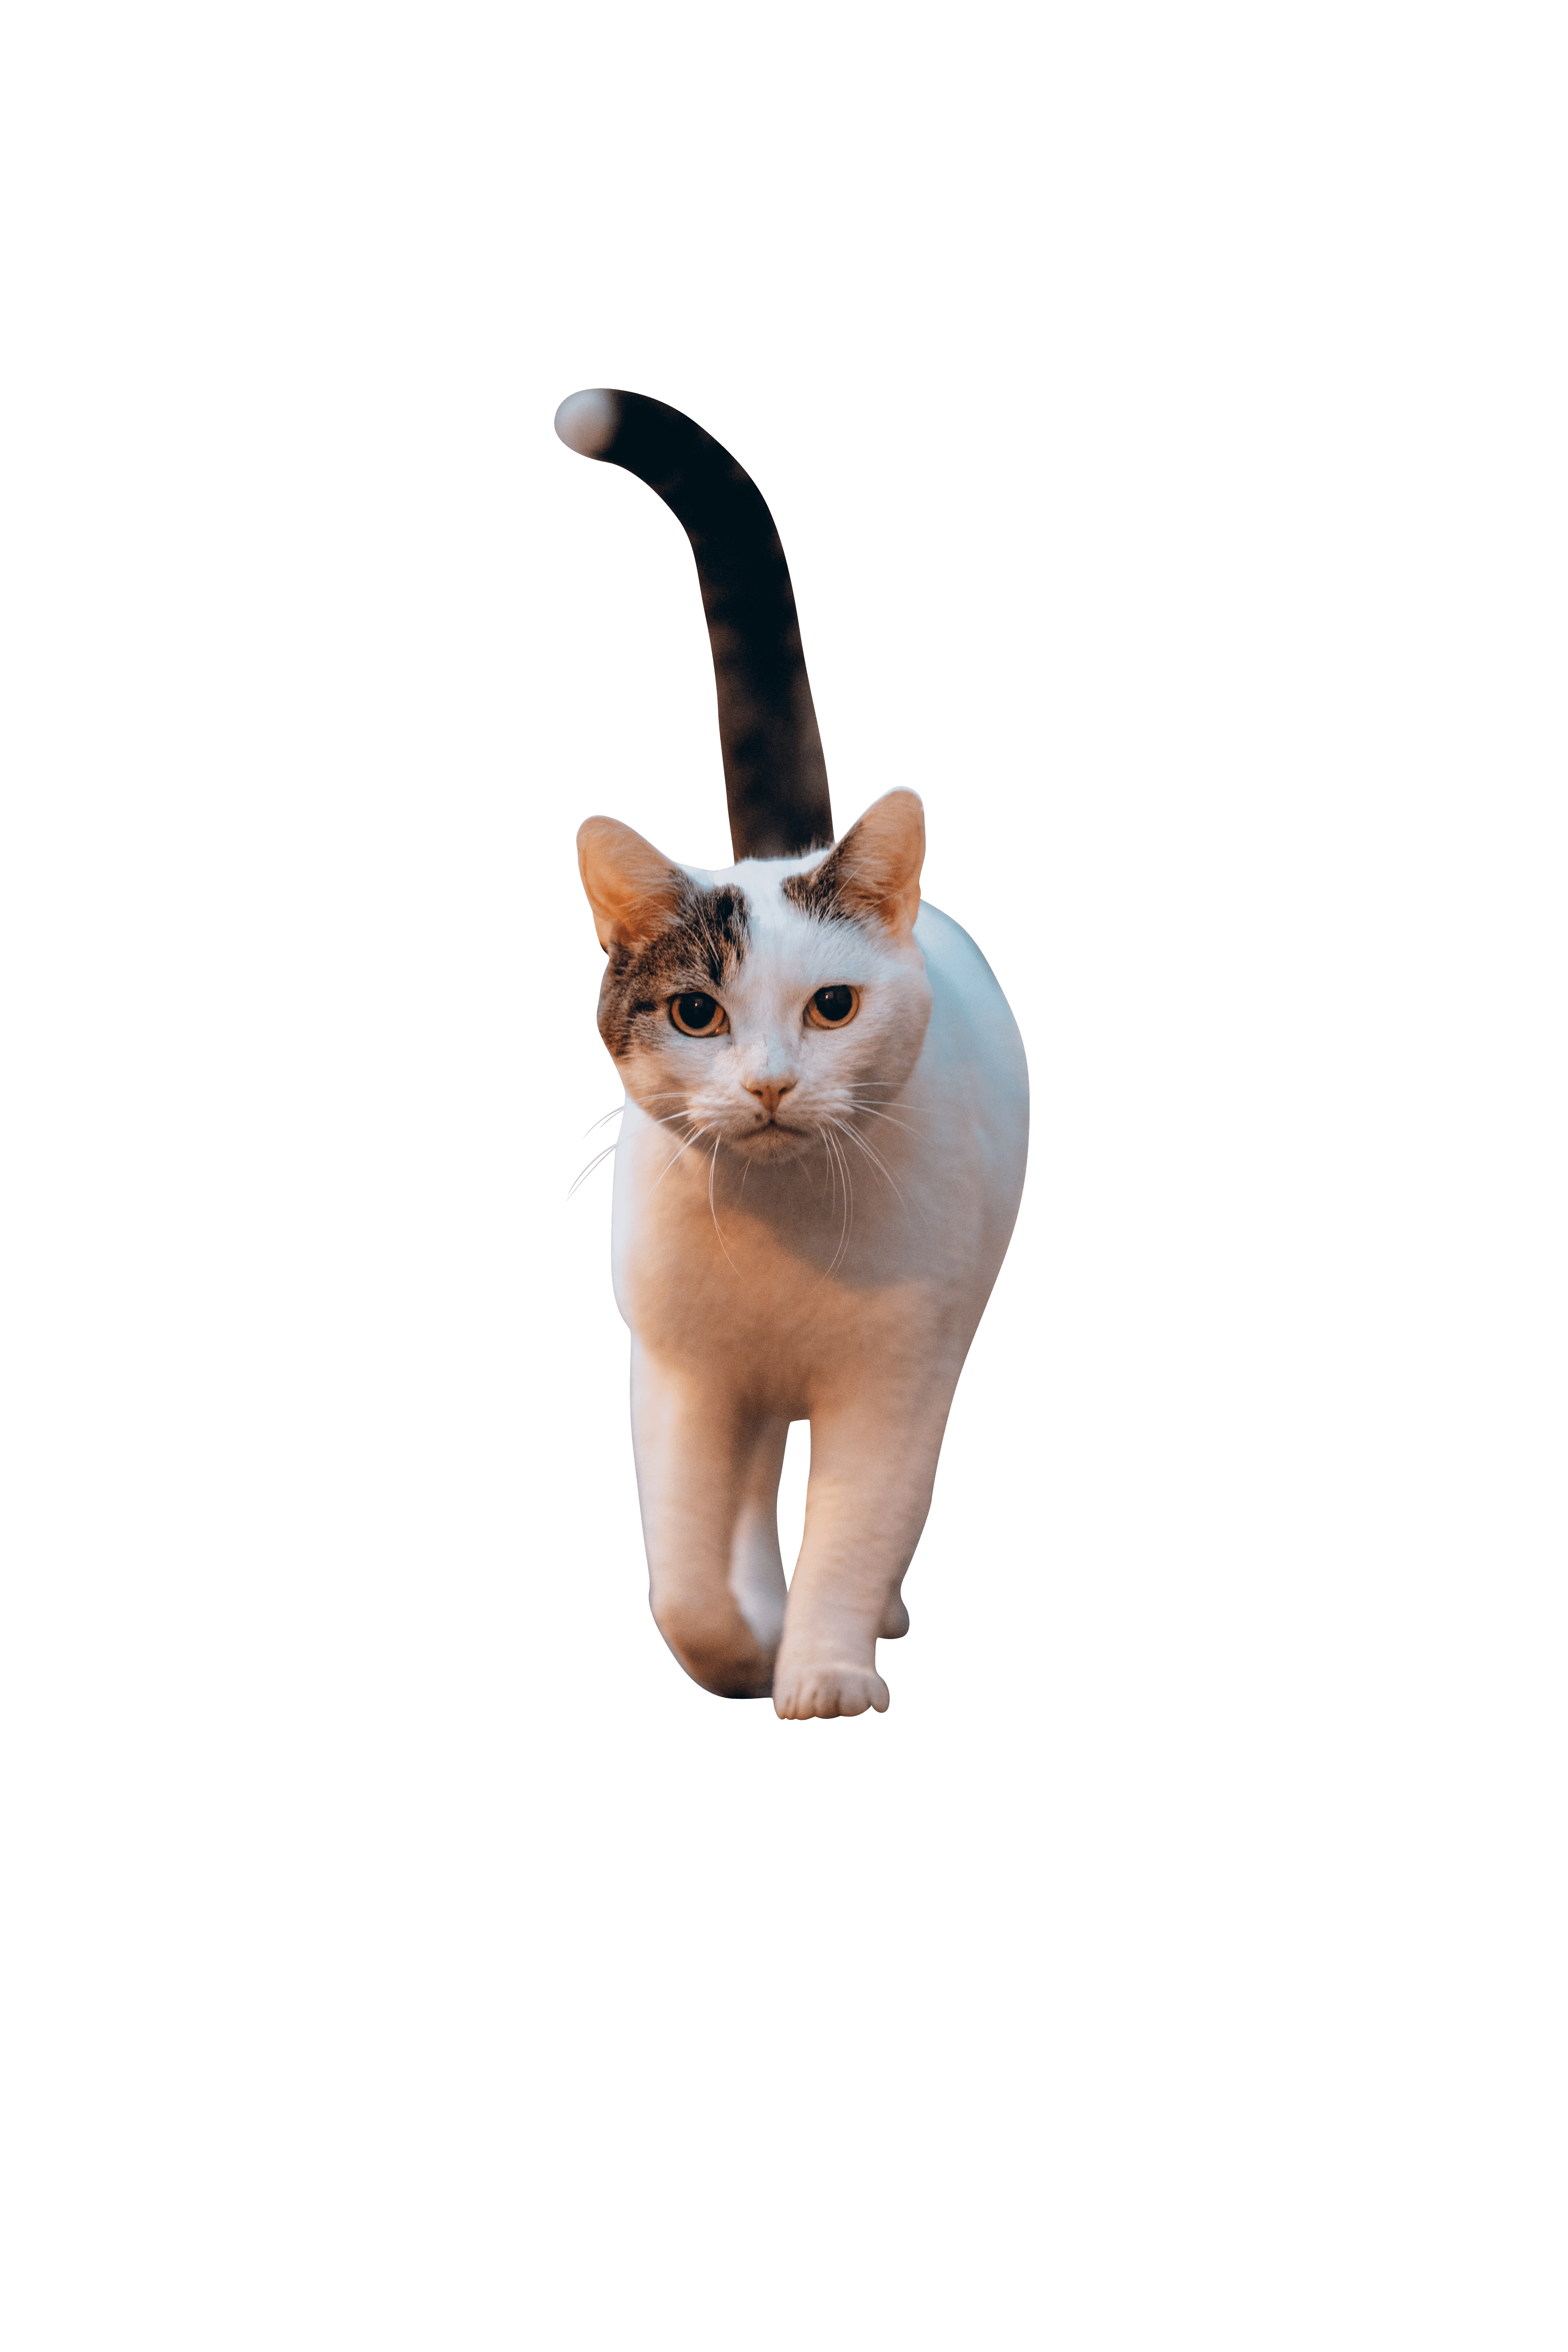 Cat walking front view transparent background.png